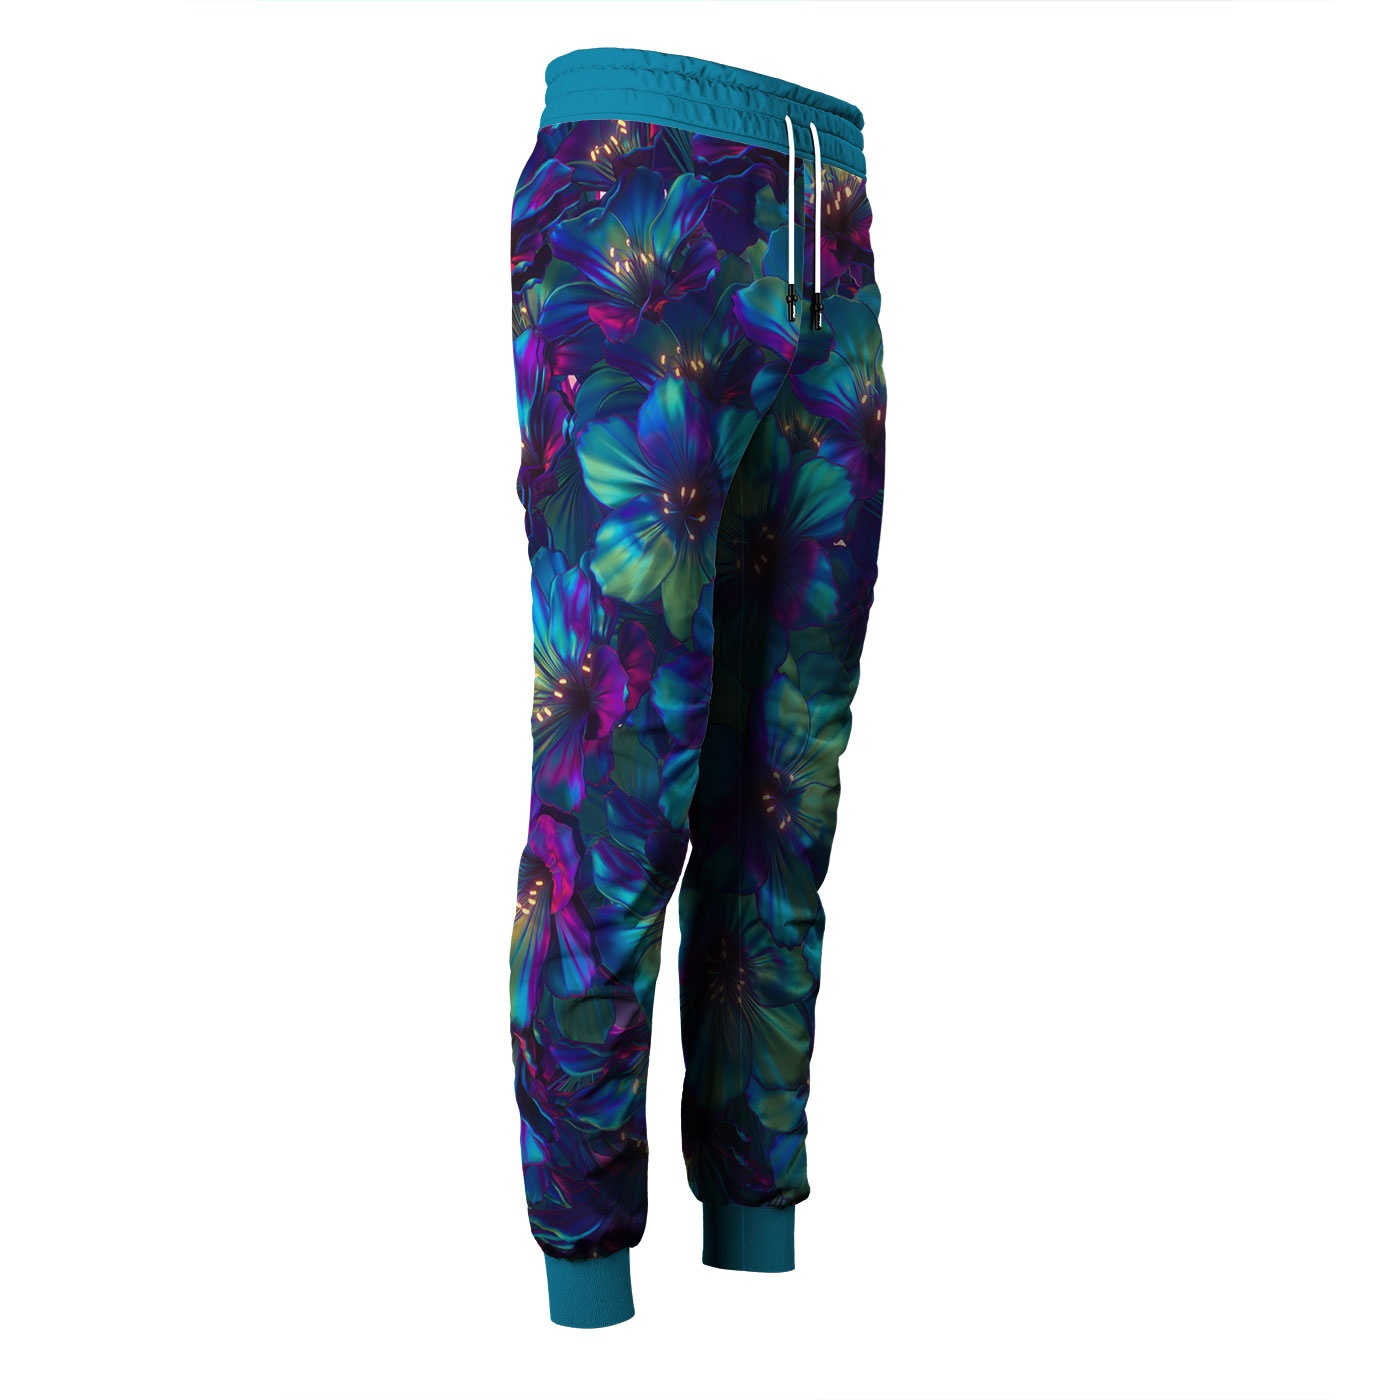 Flower Sweatpants